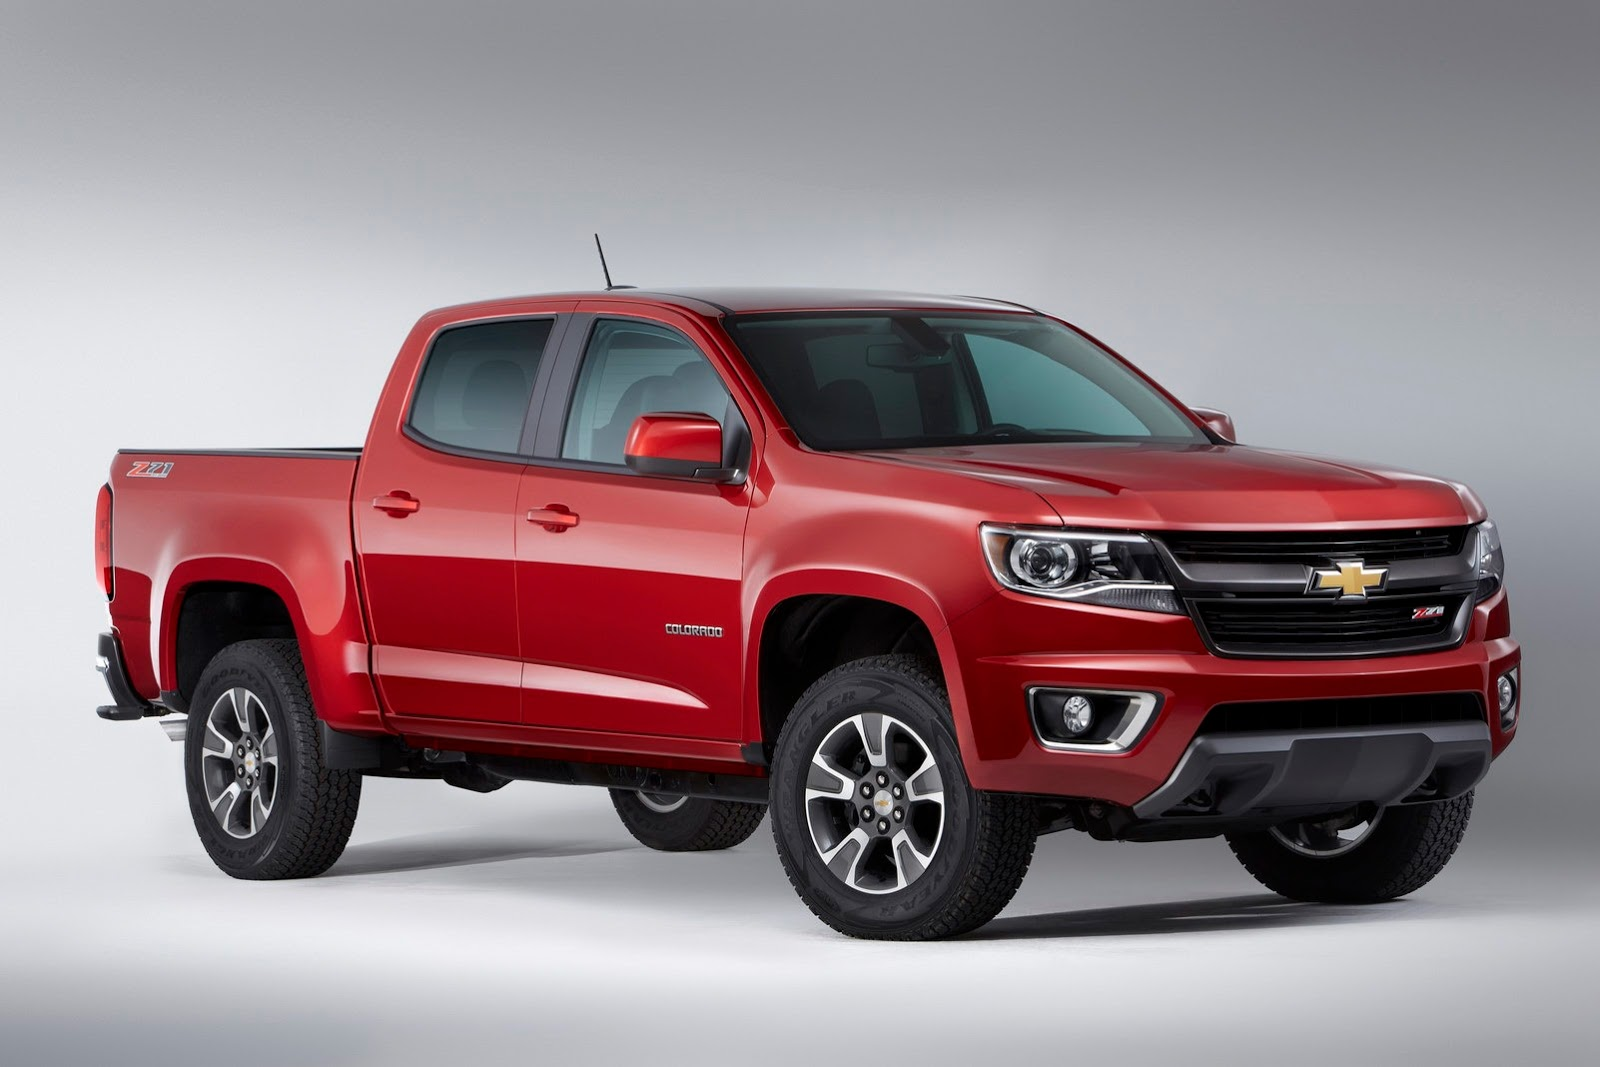 2013 Toyota Tacoma For Sale >> 2015 Chevrolet Colorado Breaks Cover in LA - autoevolution